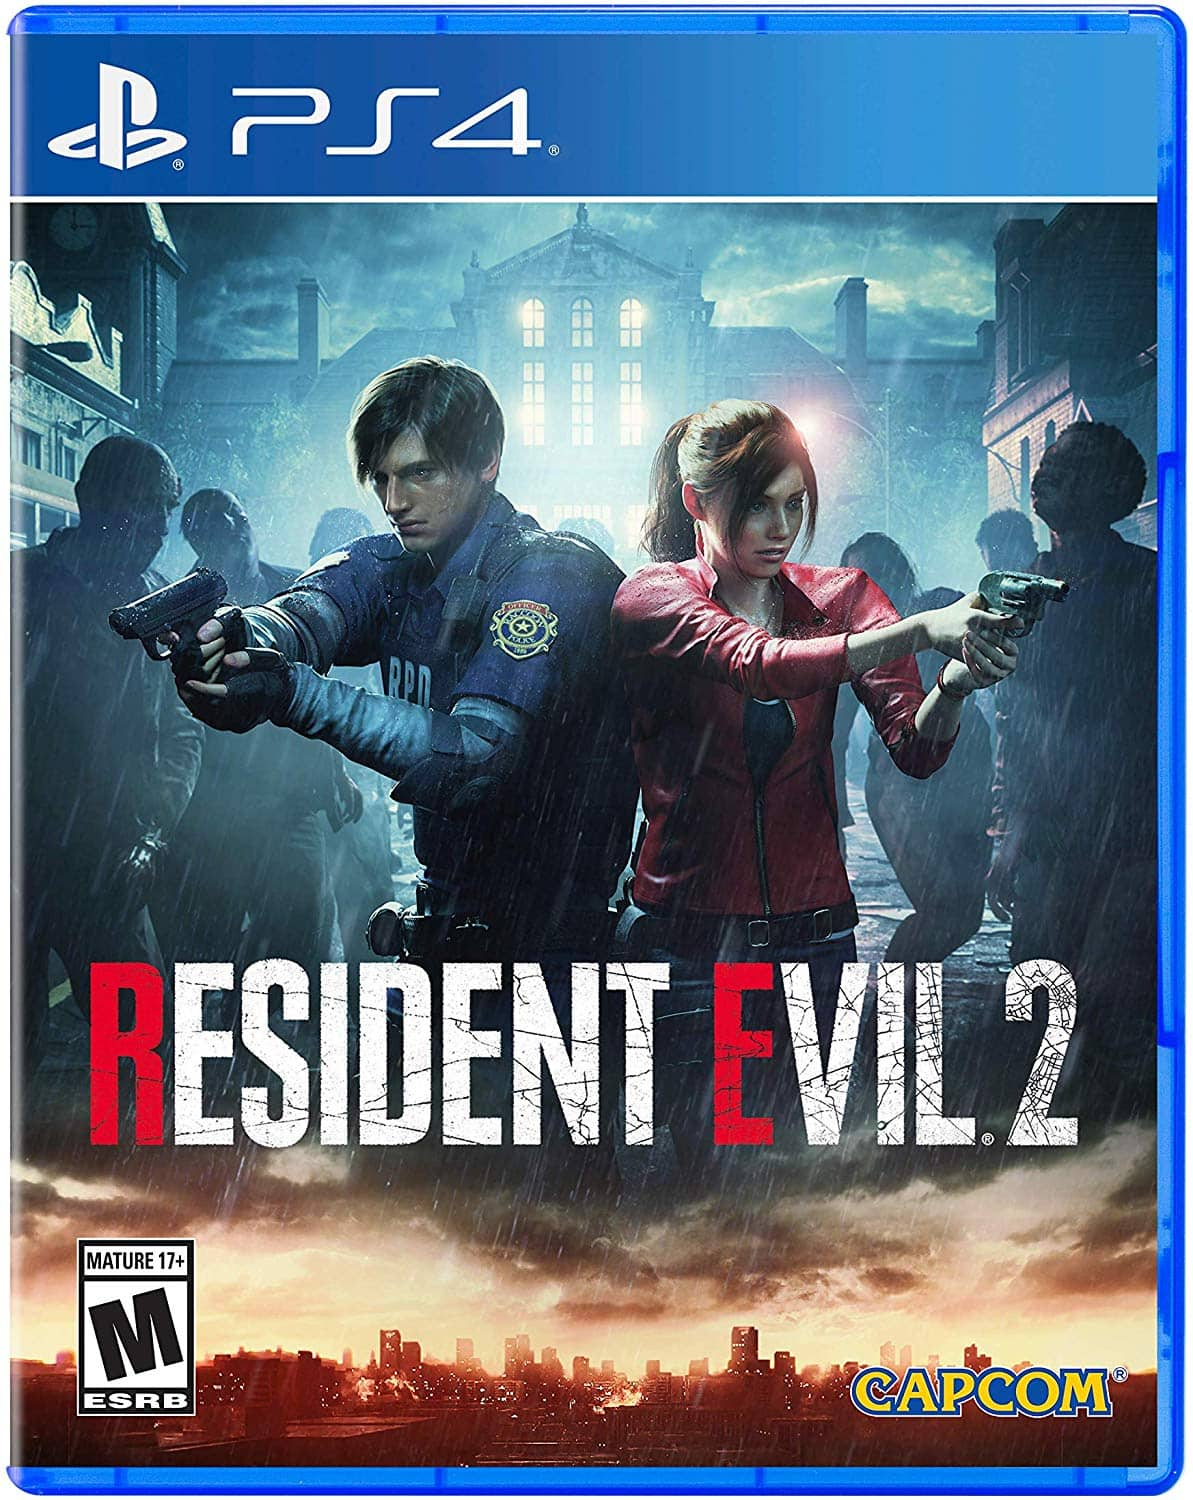 PS4 Games: Mega Man 11 $9.80, Shadow of the Tomb Raider $17.50, Resident Evil 2 $28 & More